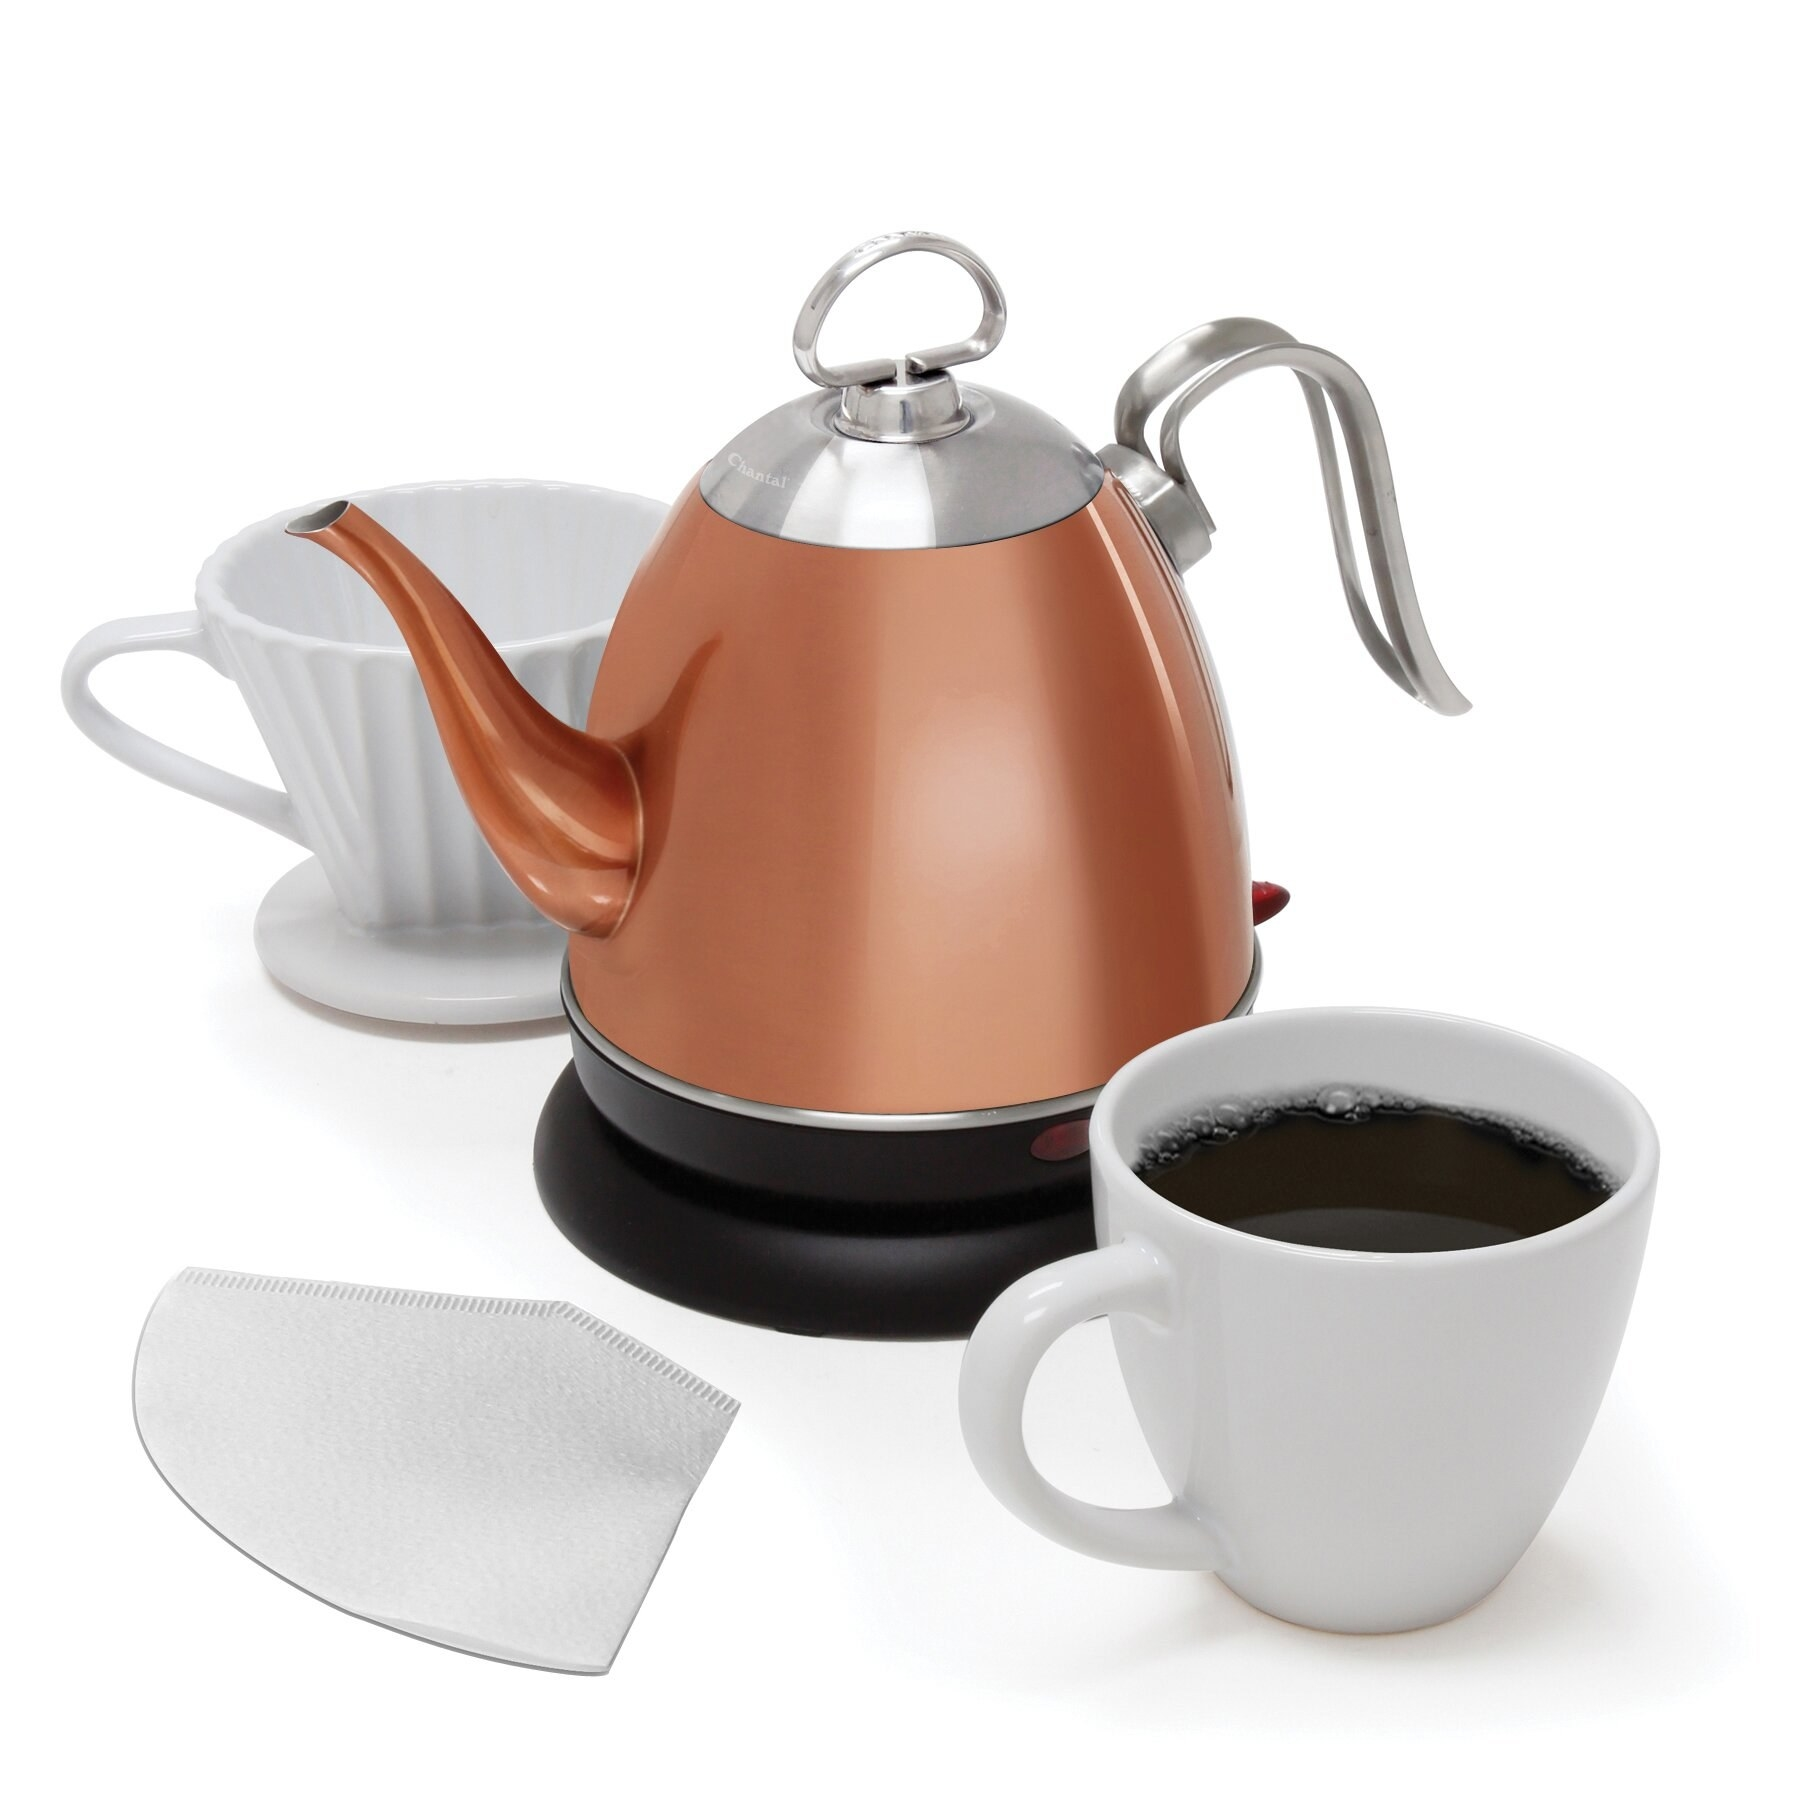 A copper colored electric kettle with a handle and spout